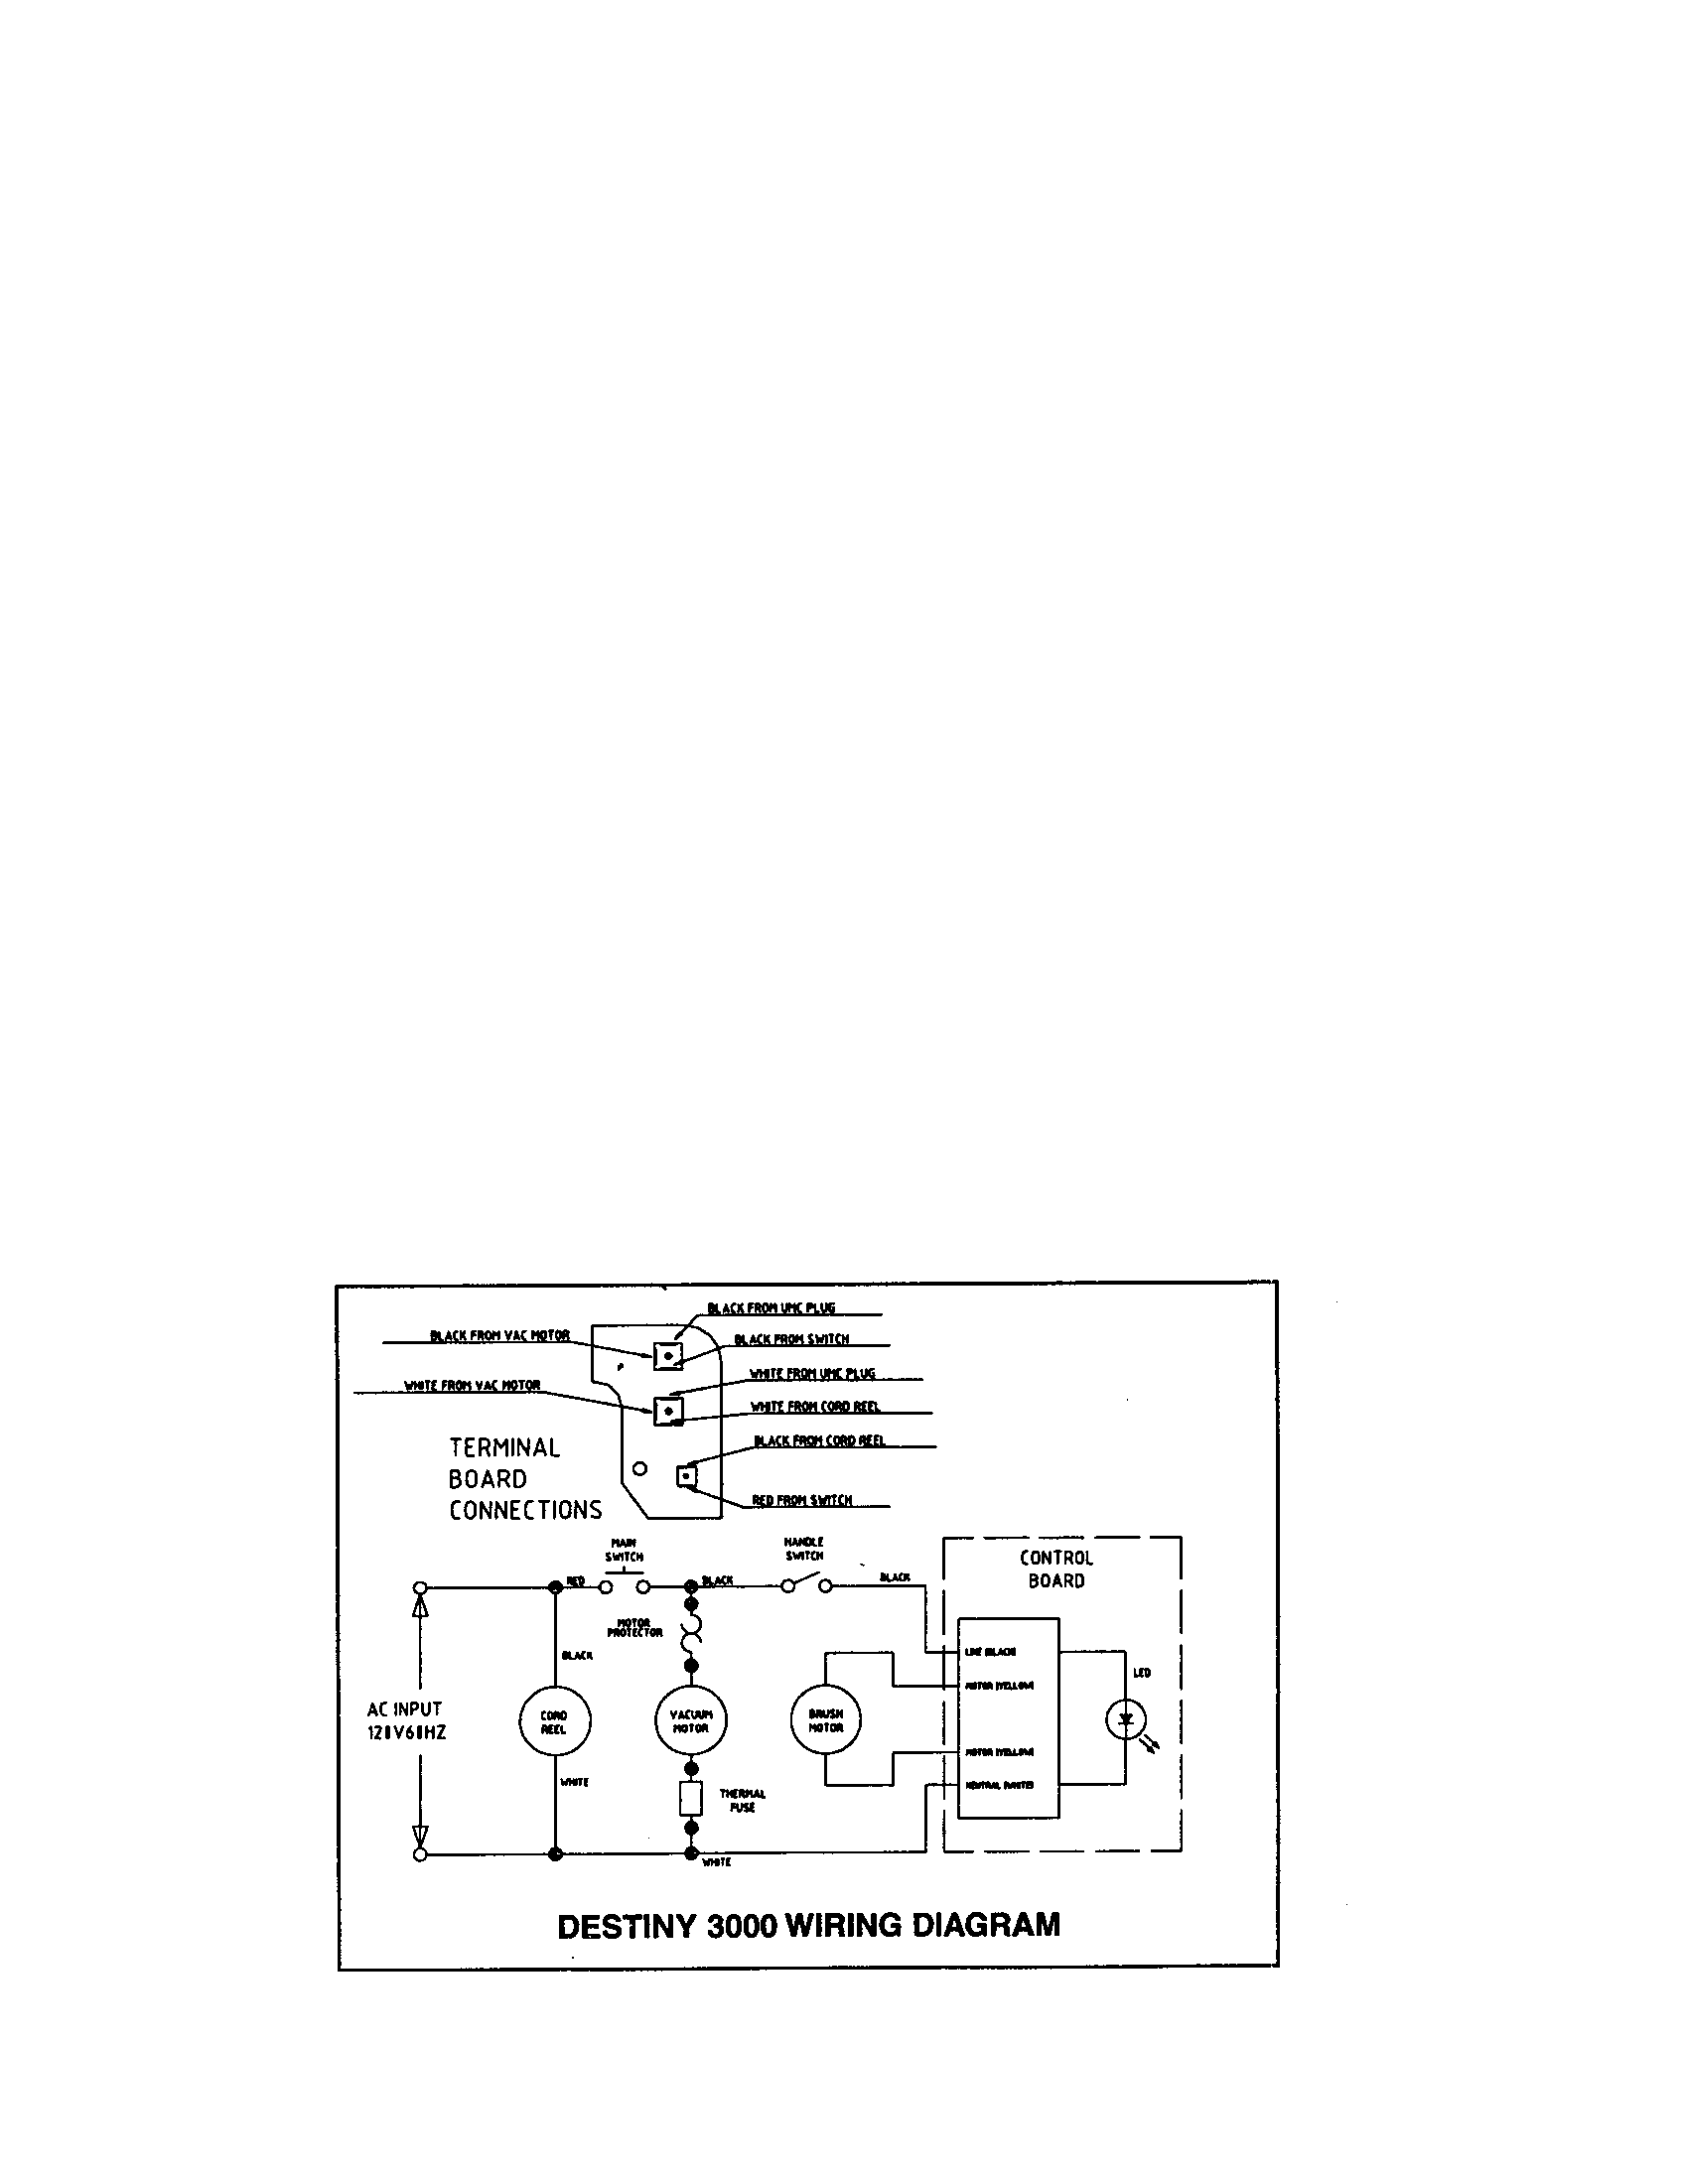 Dn 0712  Sears Ss12 Wiring Diagram Download Diagram